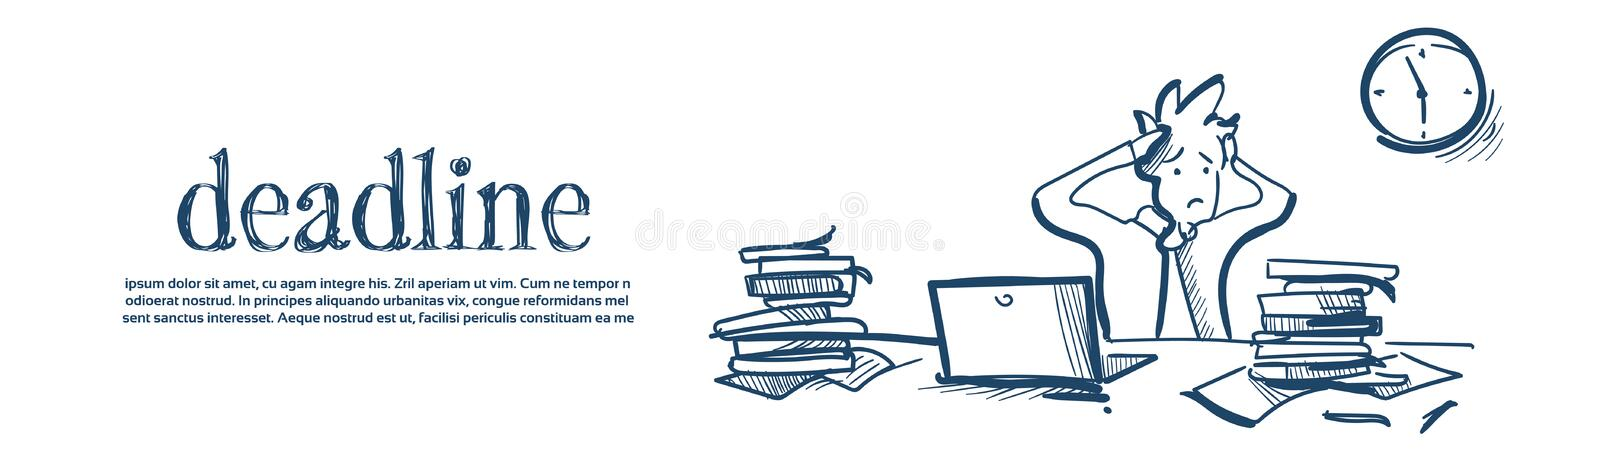 Confused businessman holding head tired deadline solve problems concept hard working process white background sketch stock illustration